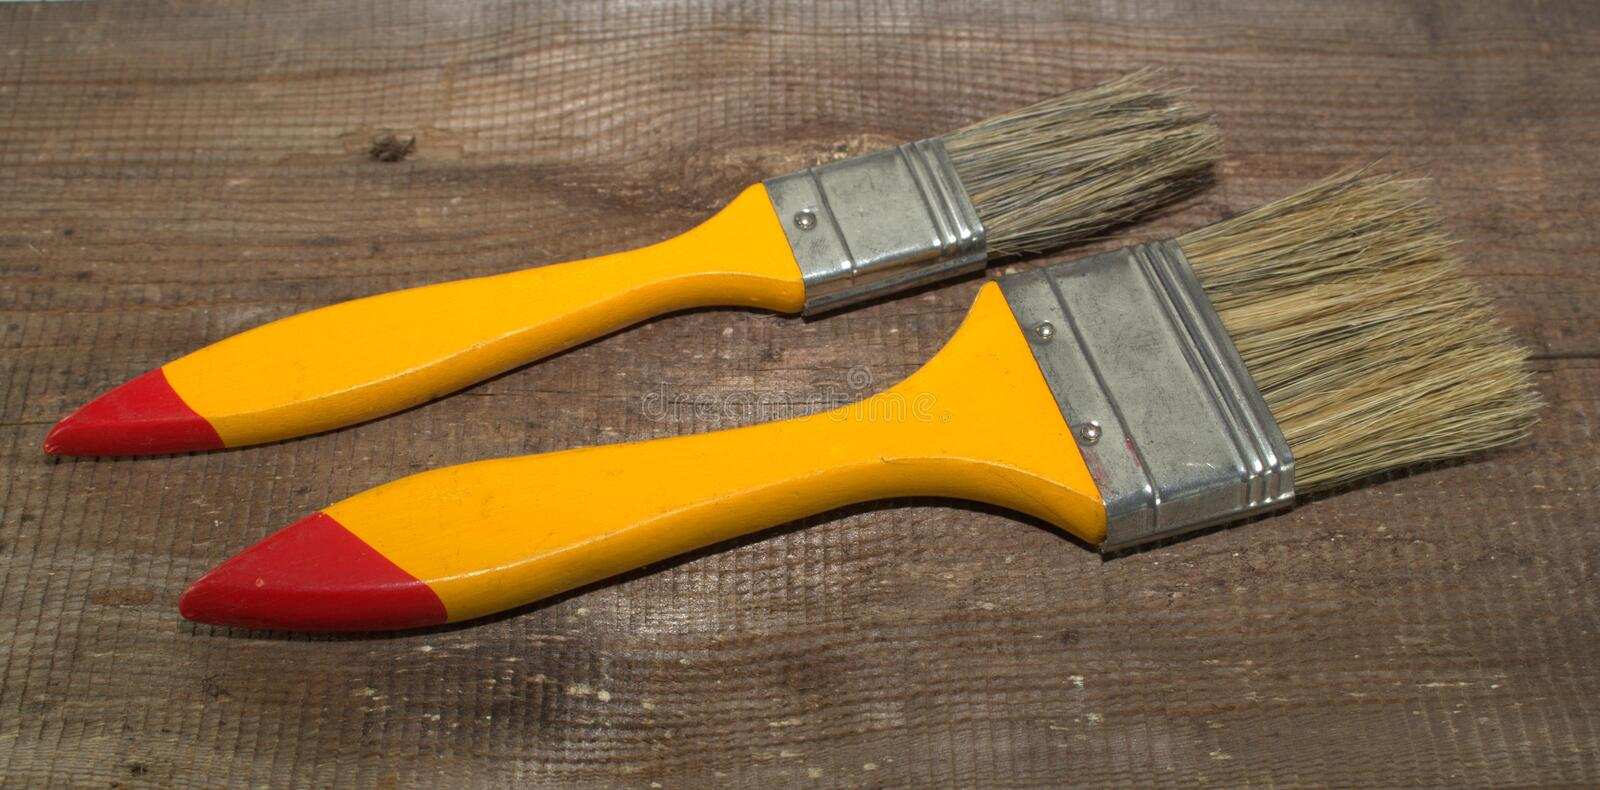 Two paint brushes 1 inch wide and 2 inches wide with yellow handles on a wooden background. Close-up royalty free stock photo